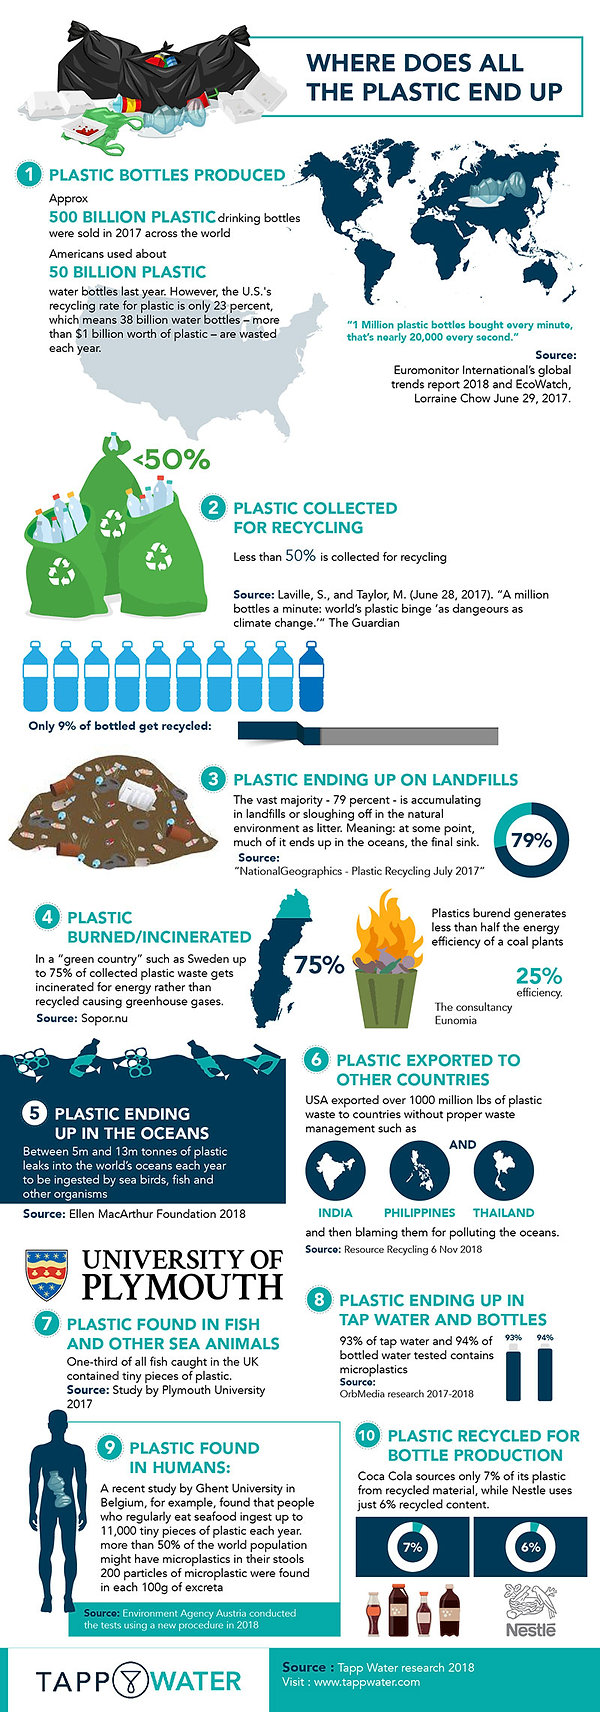 where plastic waste ends up.jpg